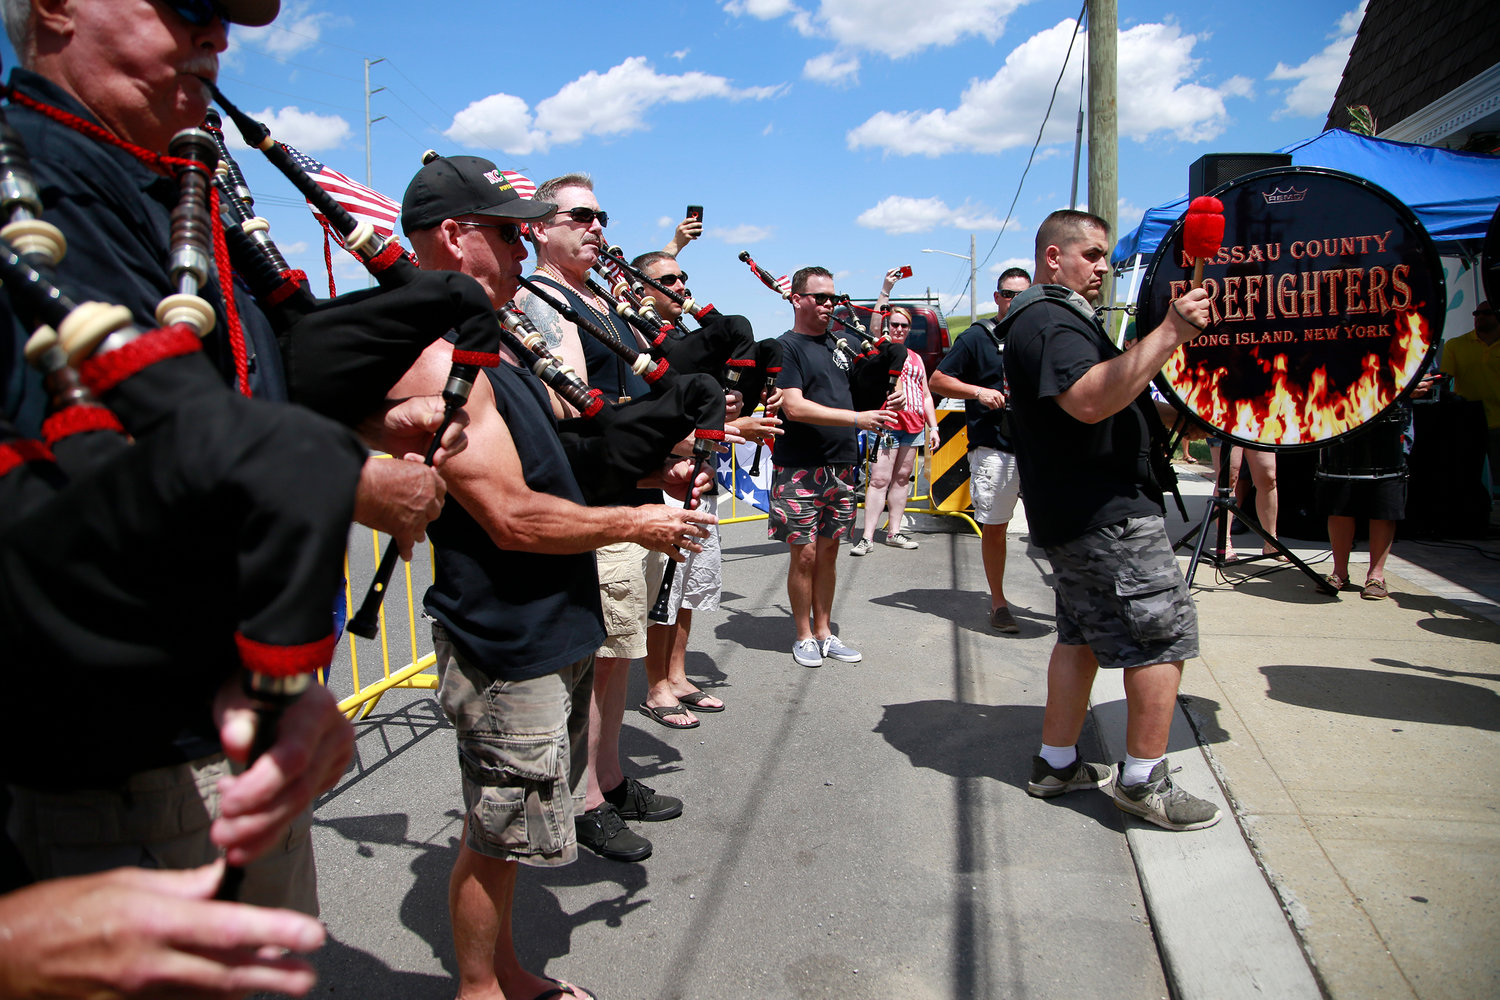 Proceeds benefitted the Nassau County Firefighters Pipes & Drums, which performed during the event.